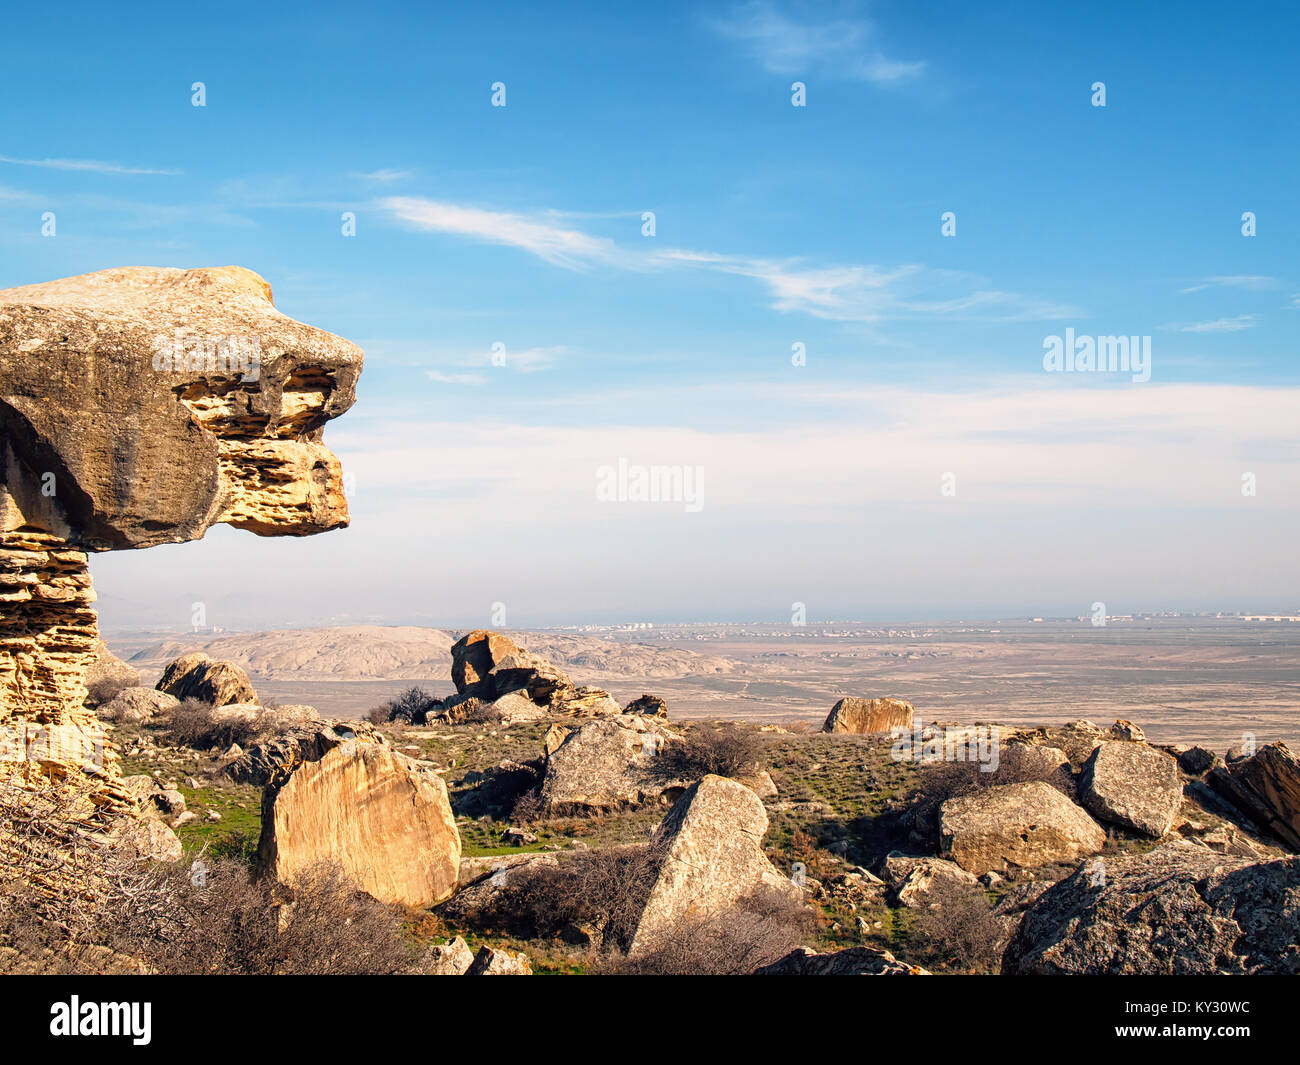 Martian Landscape Stock Photos & Martian Landscape Stock ...